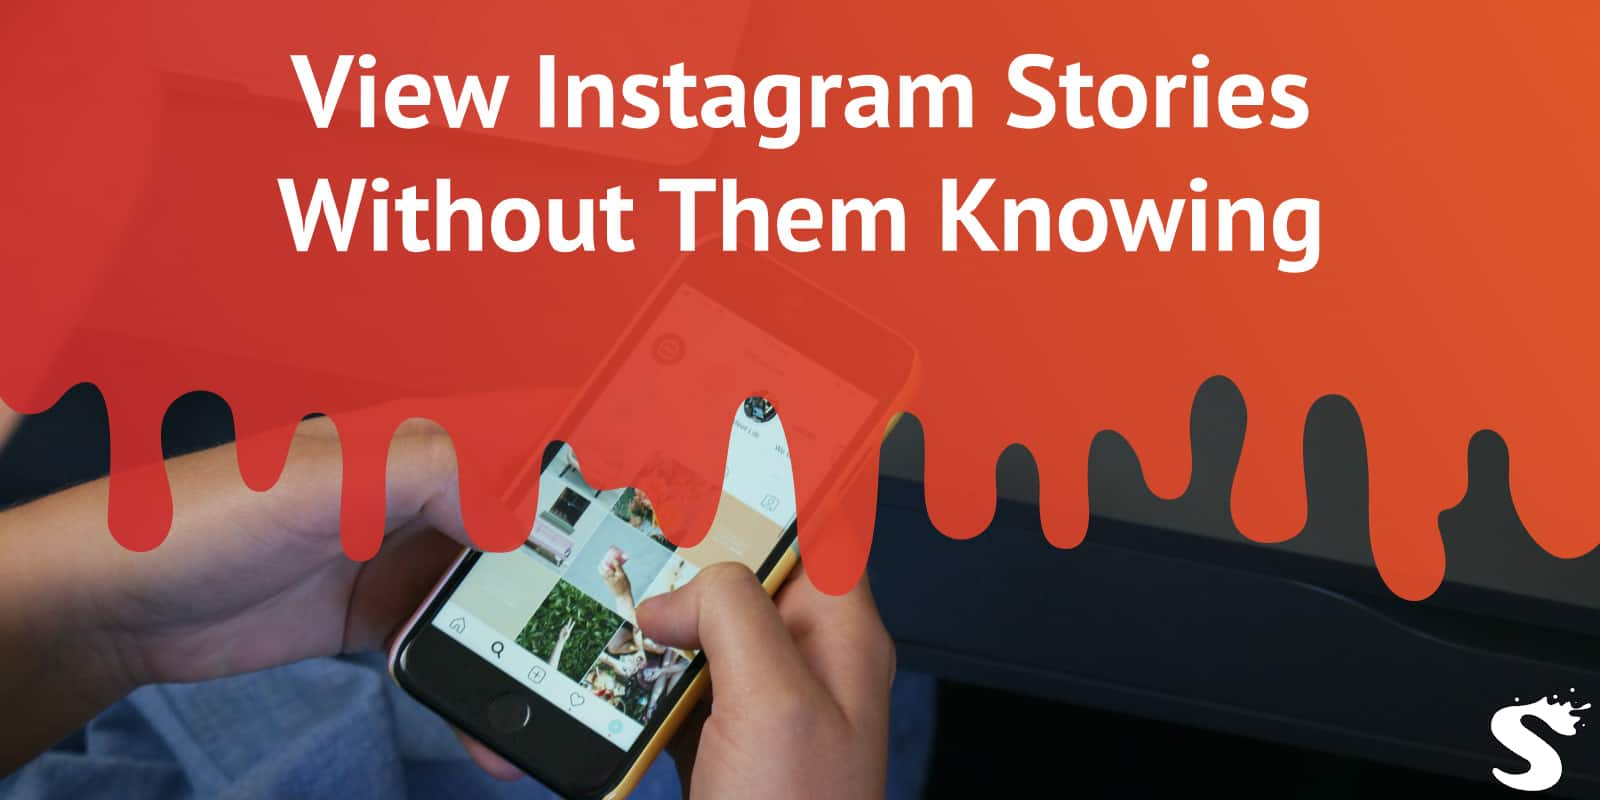 How to View Instagram Stories Without the Other Person Knowing